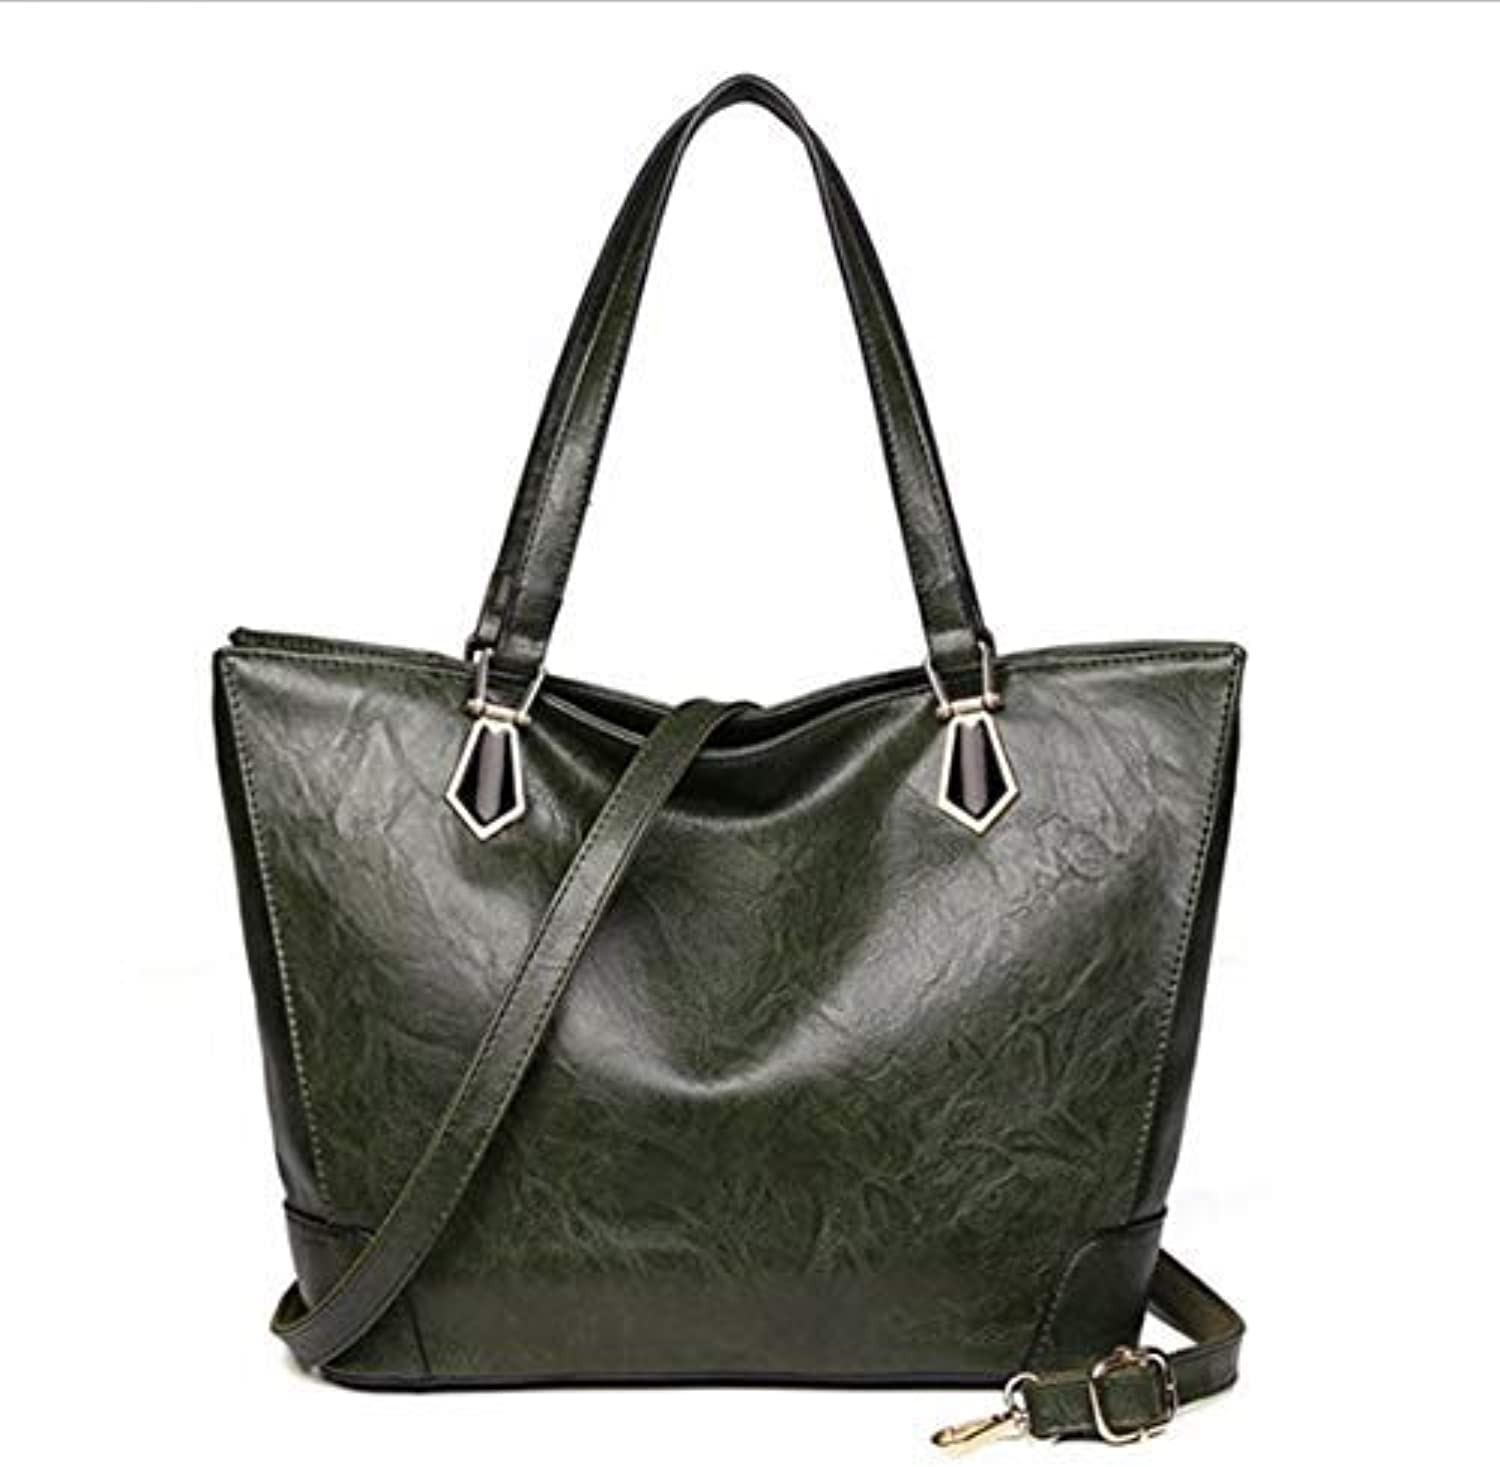 JQSM Solid color Women Shoulder Bags Soft Pu Leather High-Capacity Casual Totes Simple Style Crossbody Bags